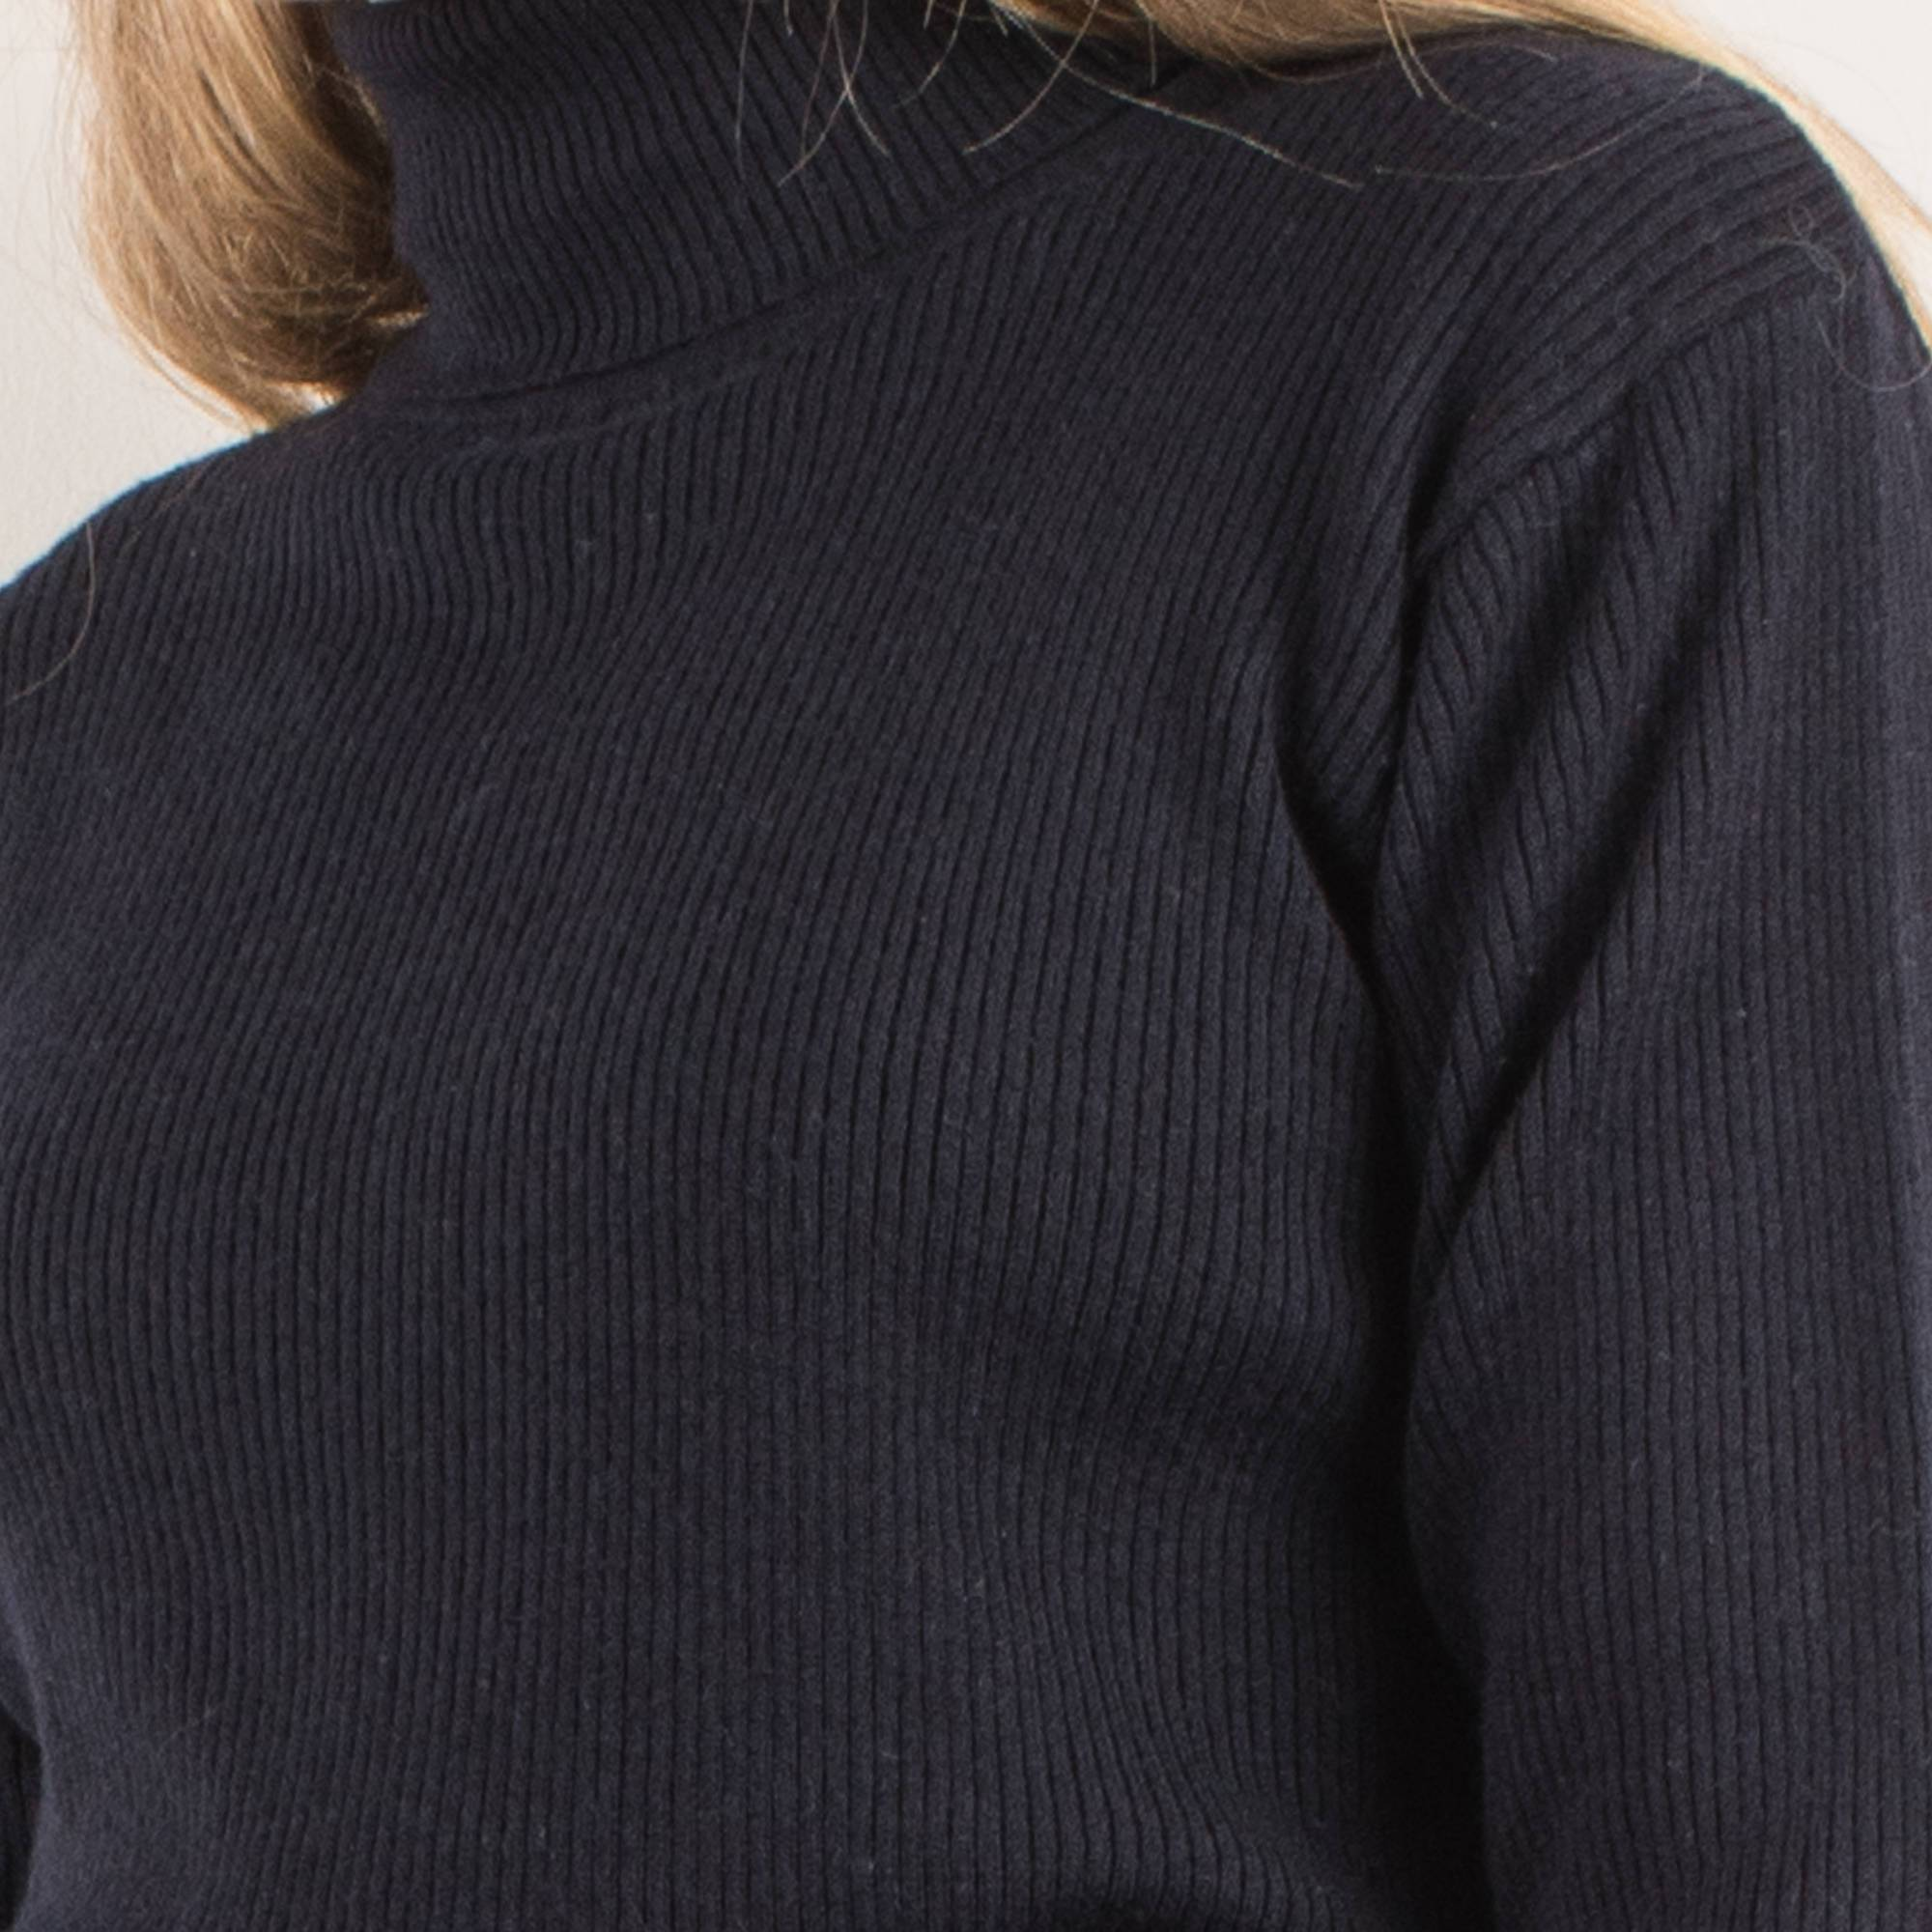 Vintage Navy Knit Turtleneck Sweater / S - Closed Caption